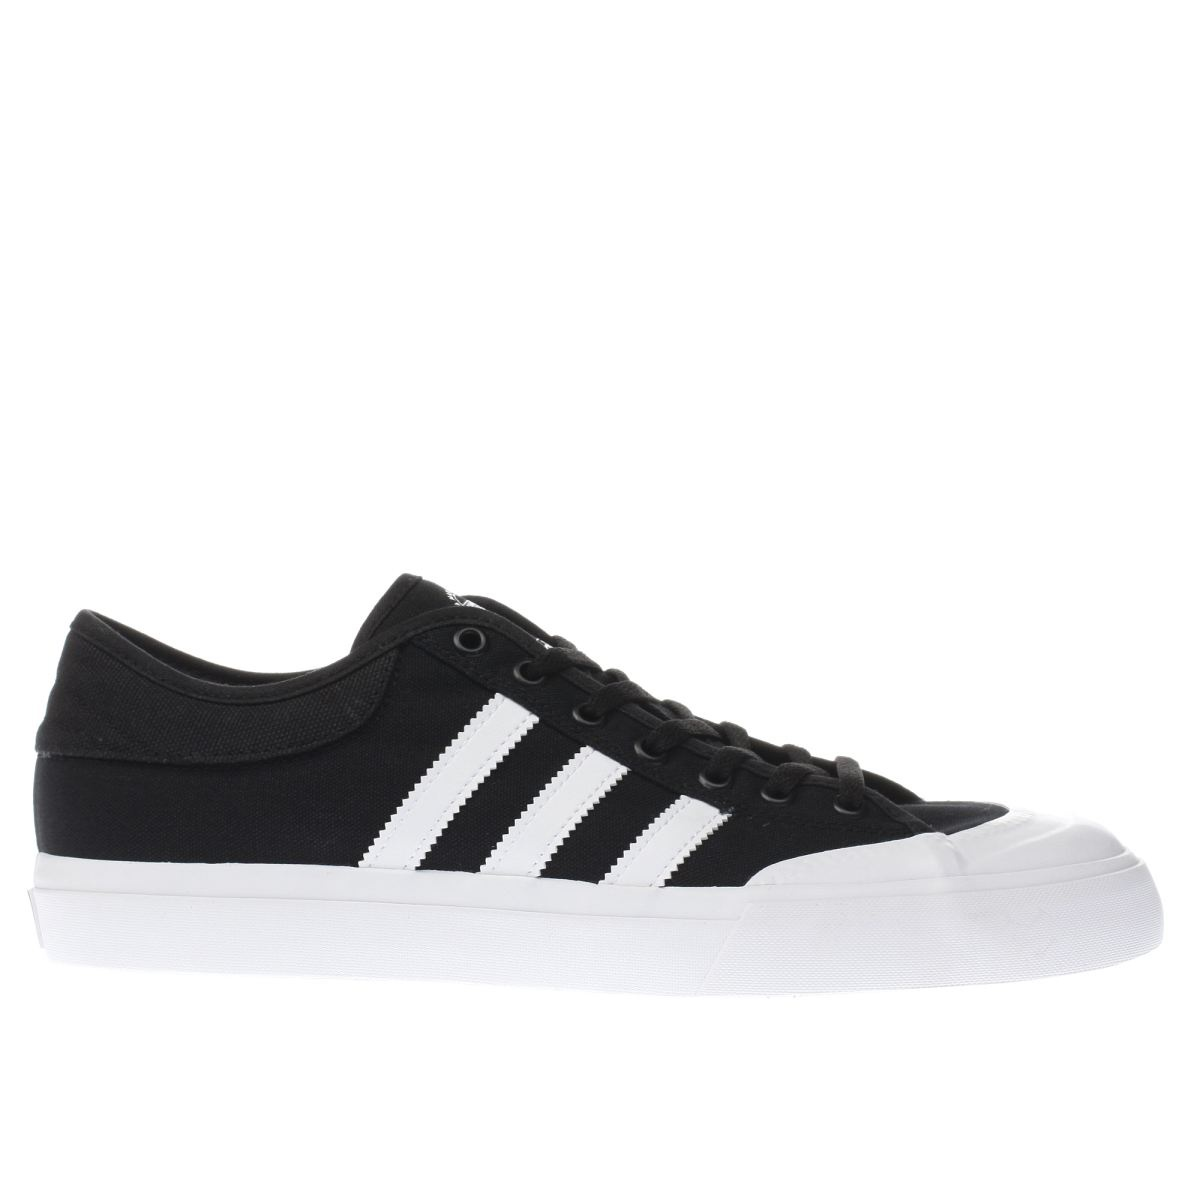 adidas-matchcourt-black-and-white-trainers